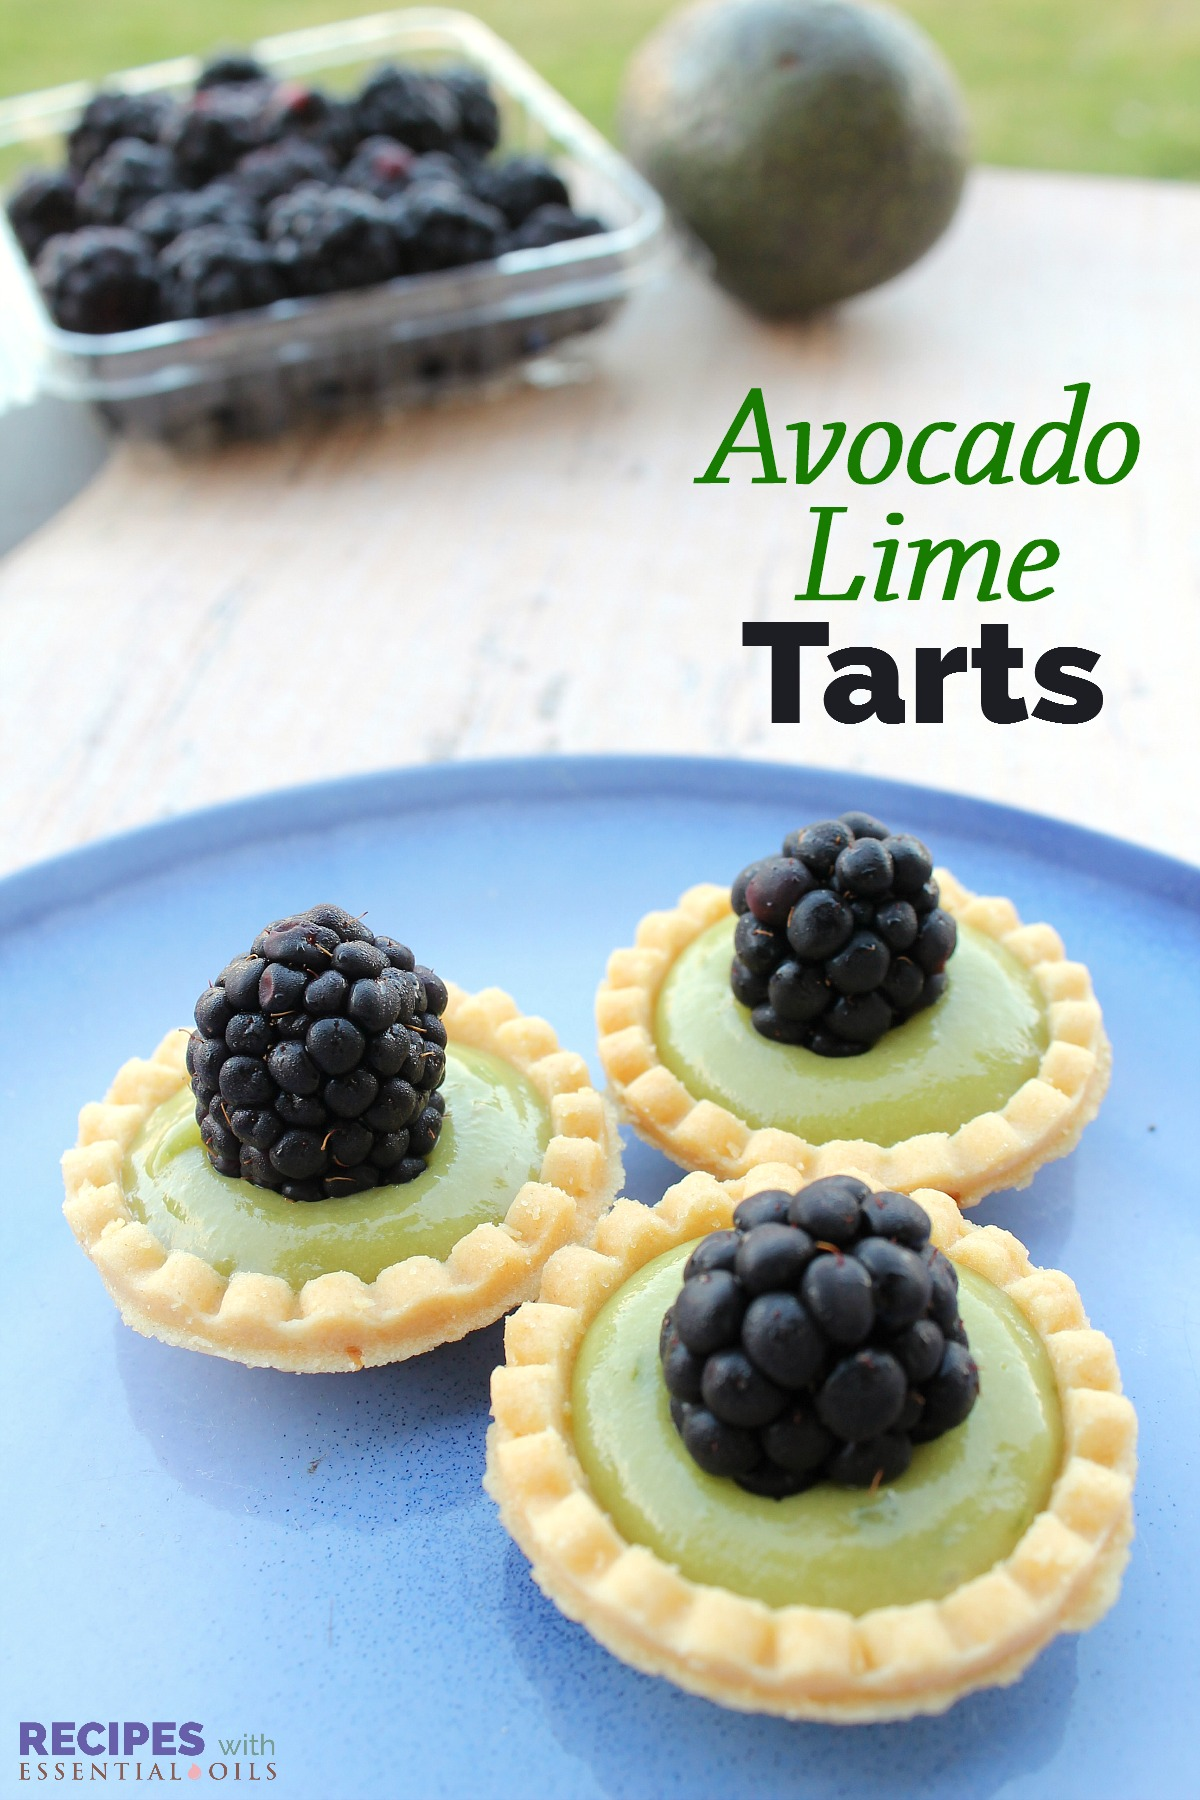 Avocado Lime Tarts Recipe from RecipeswithEssentialOils.com